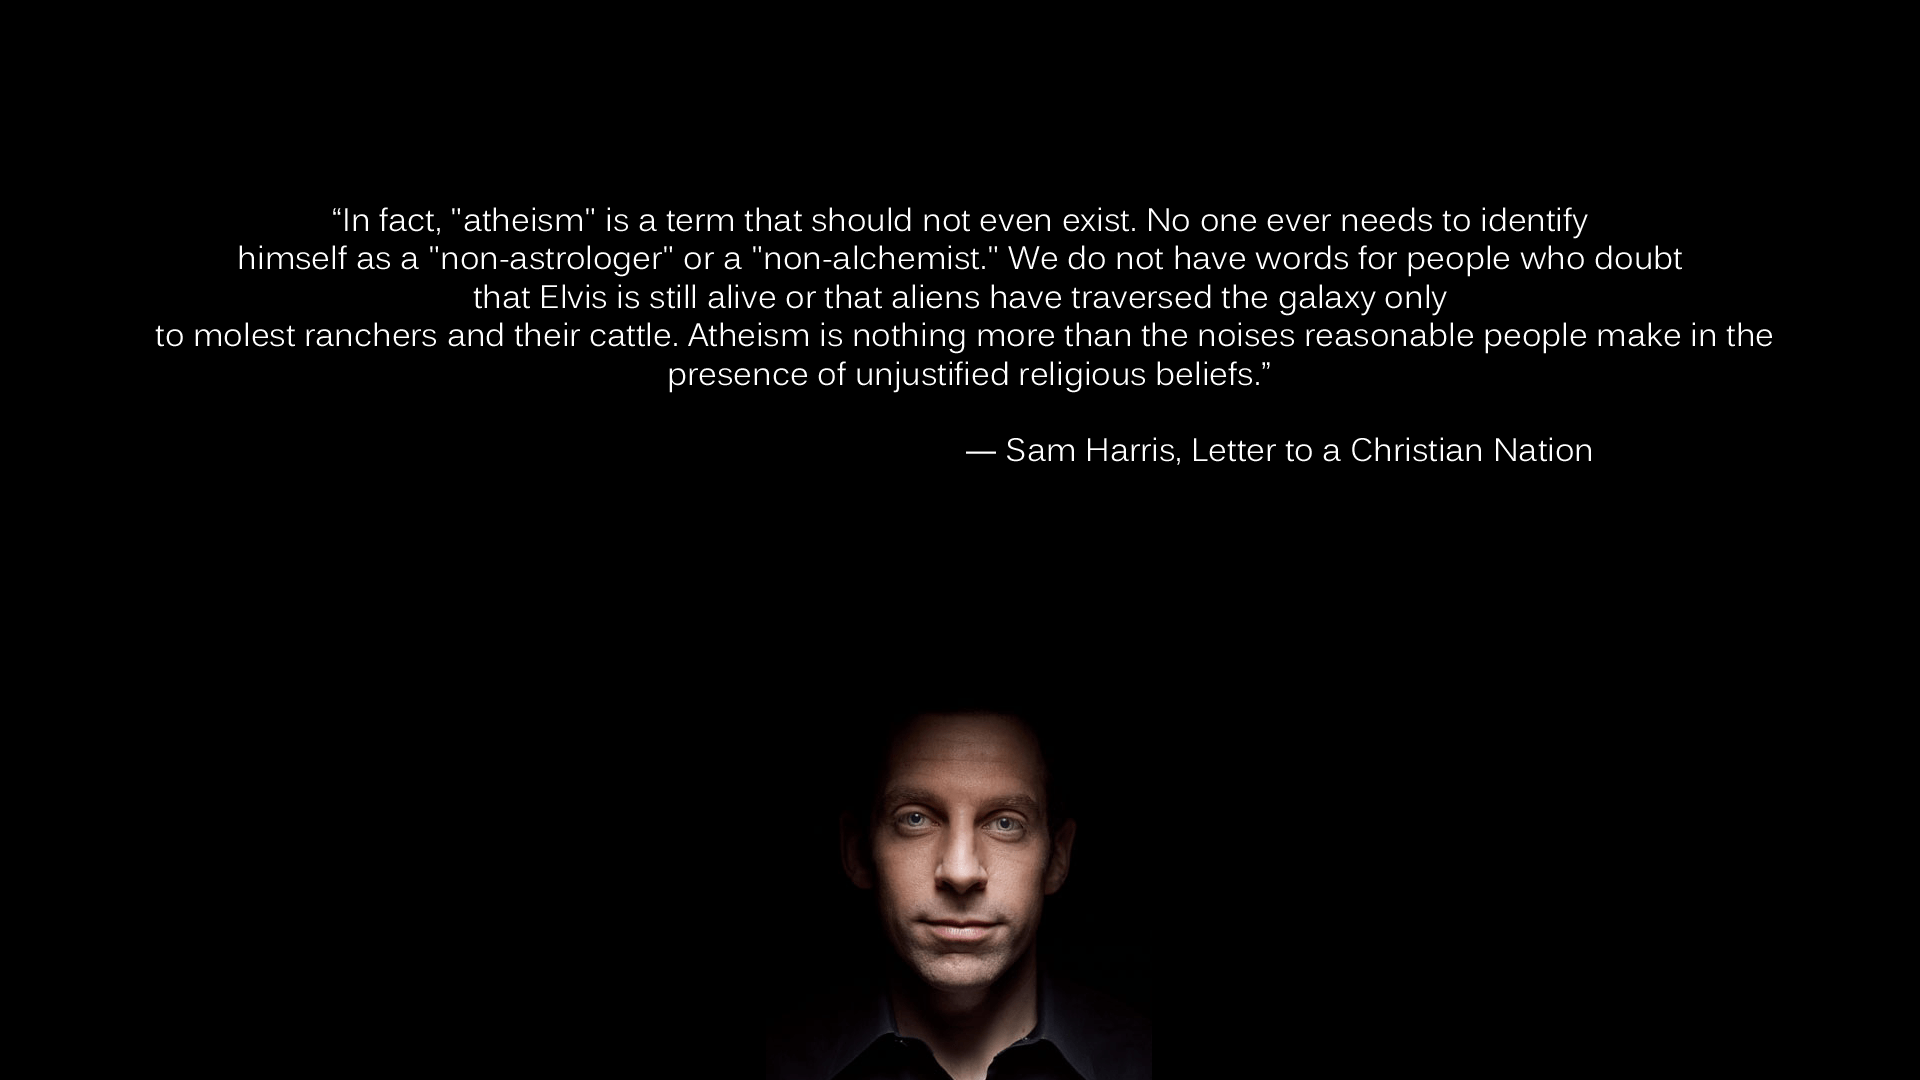 """in fact """"atheism"""" is a term that should not even exist.. Sam Harris (1929×1080)"""